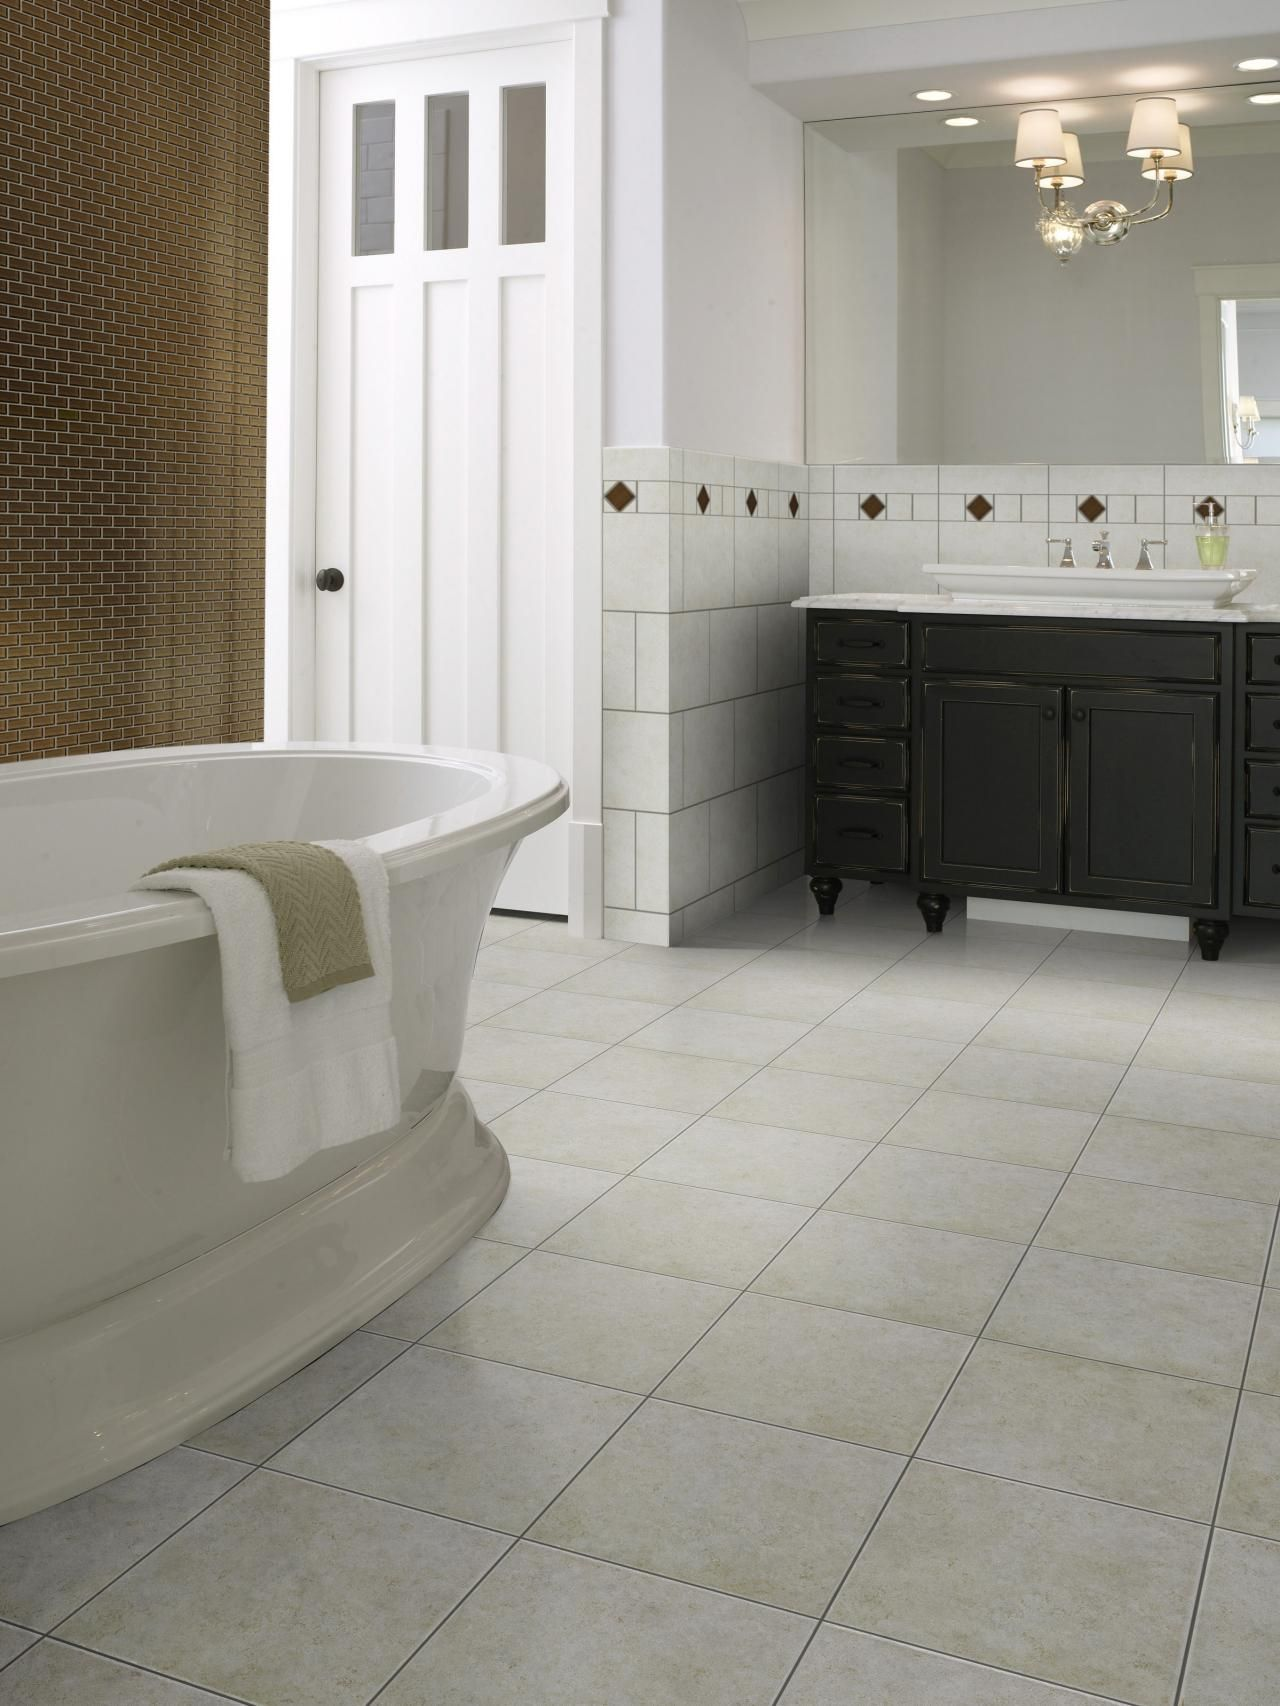 Glazed Ceramic Tile For Bathroom Floor | http://nextsoft21.com ...